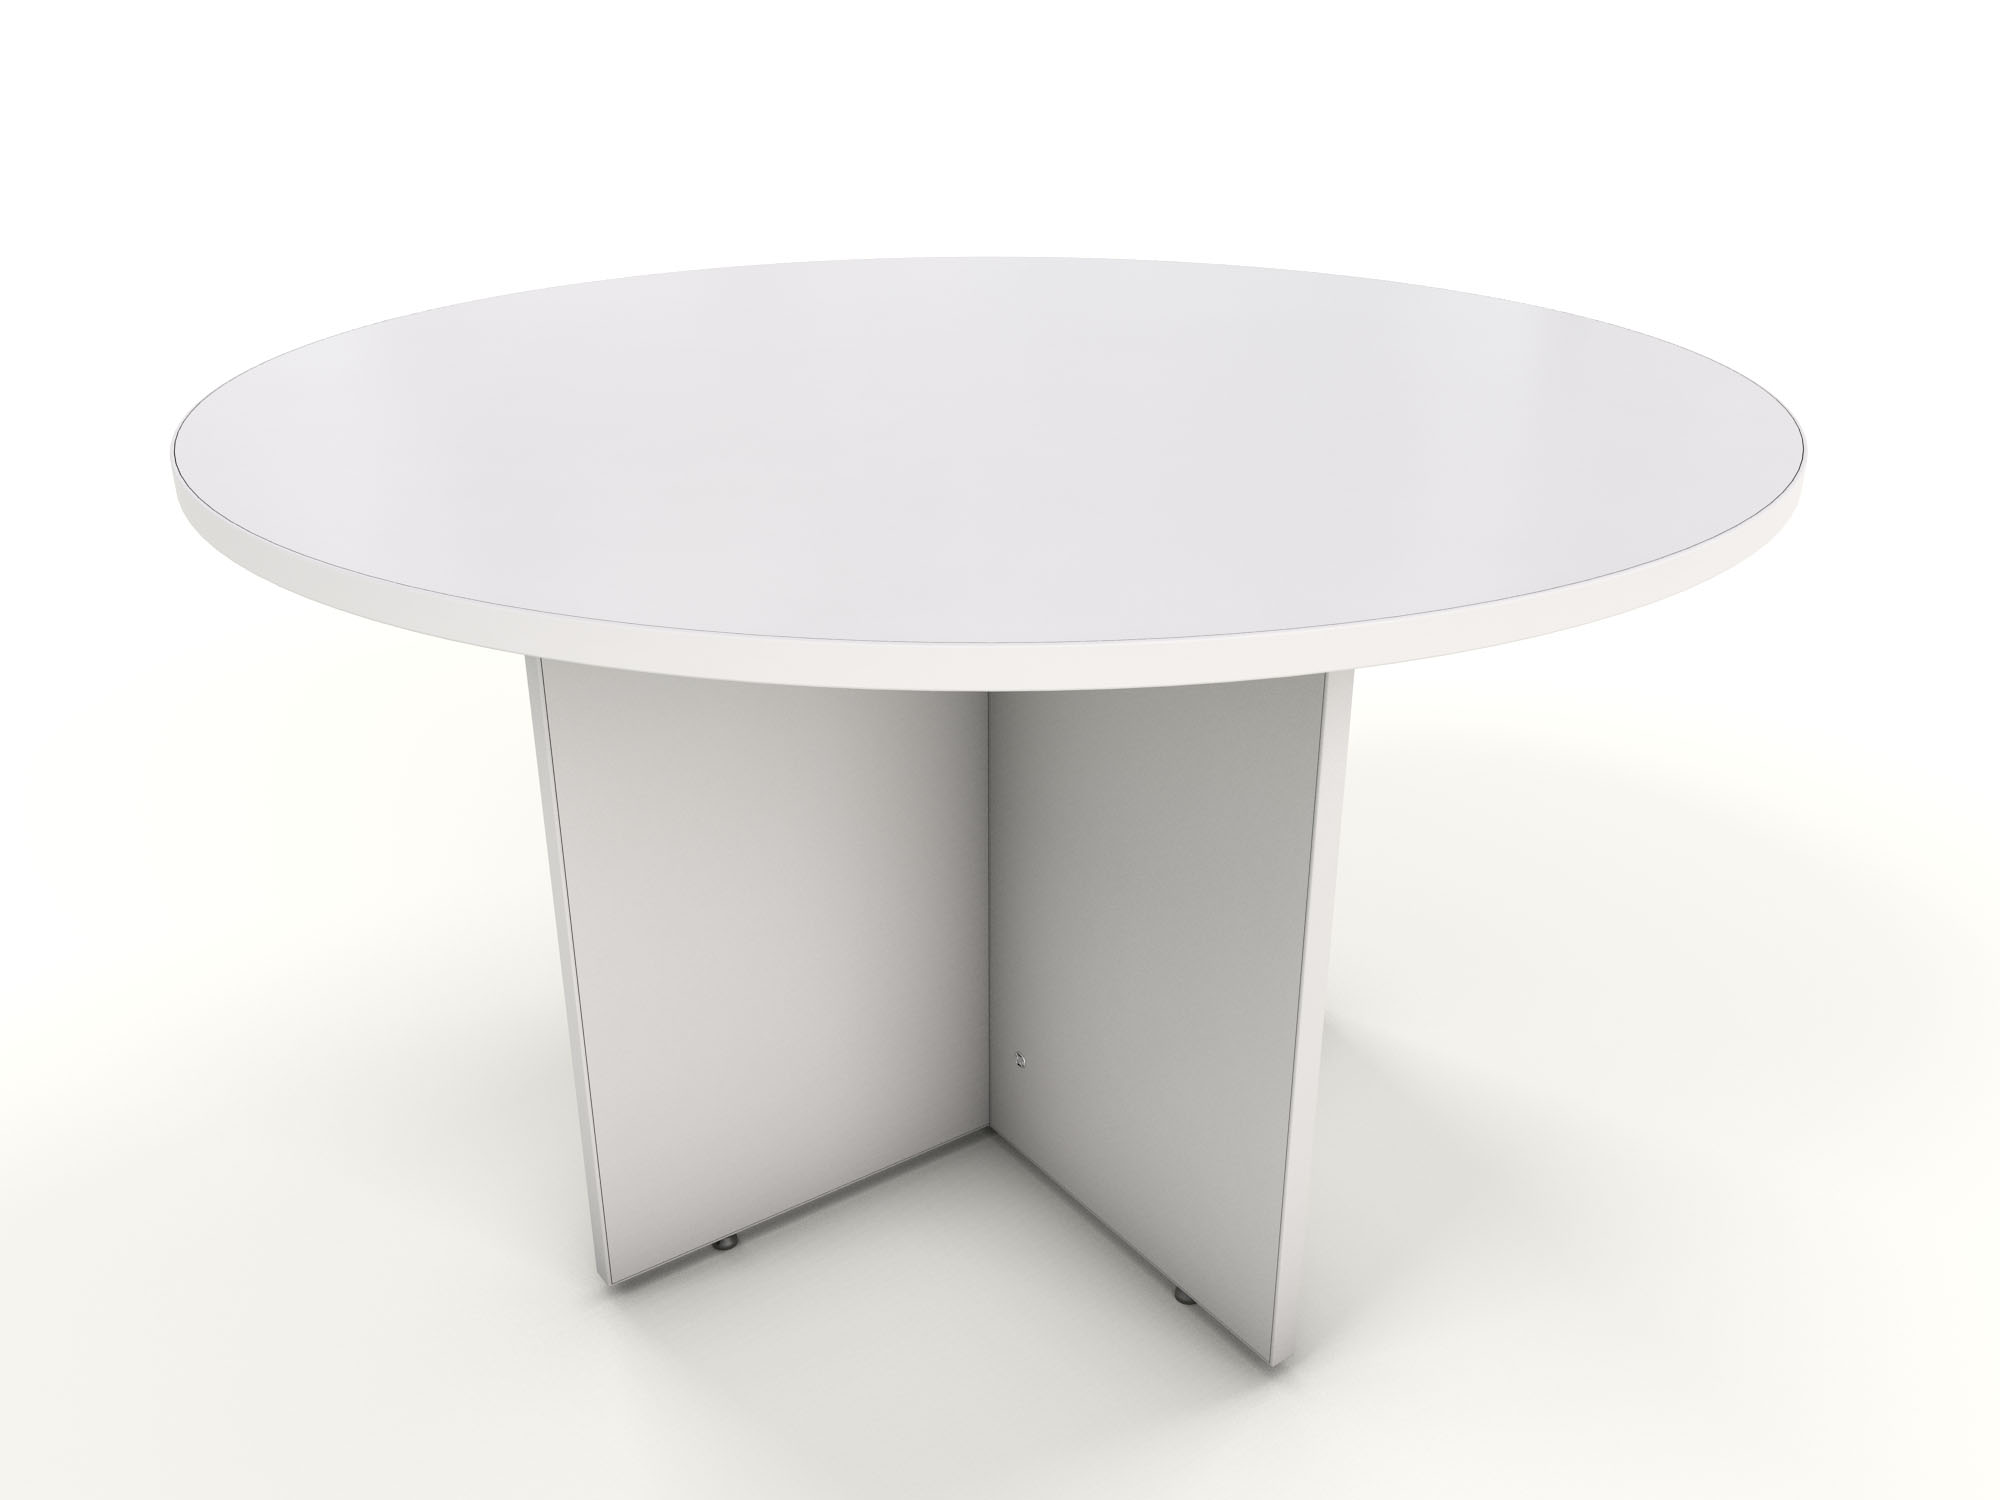 LINZ International Product Categories Meeting Tables - Small round meeting table and chairs